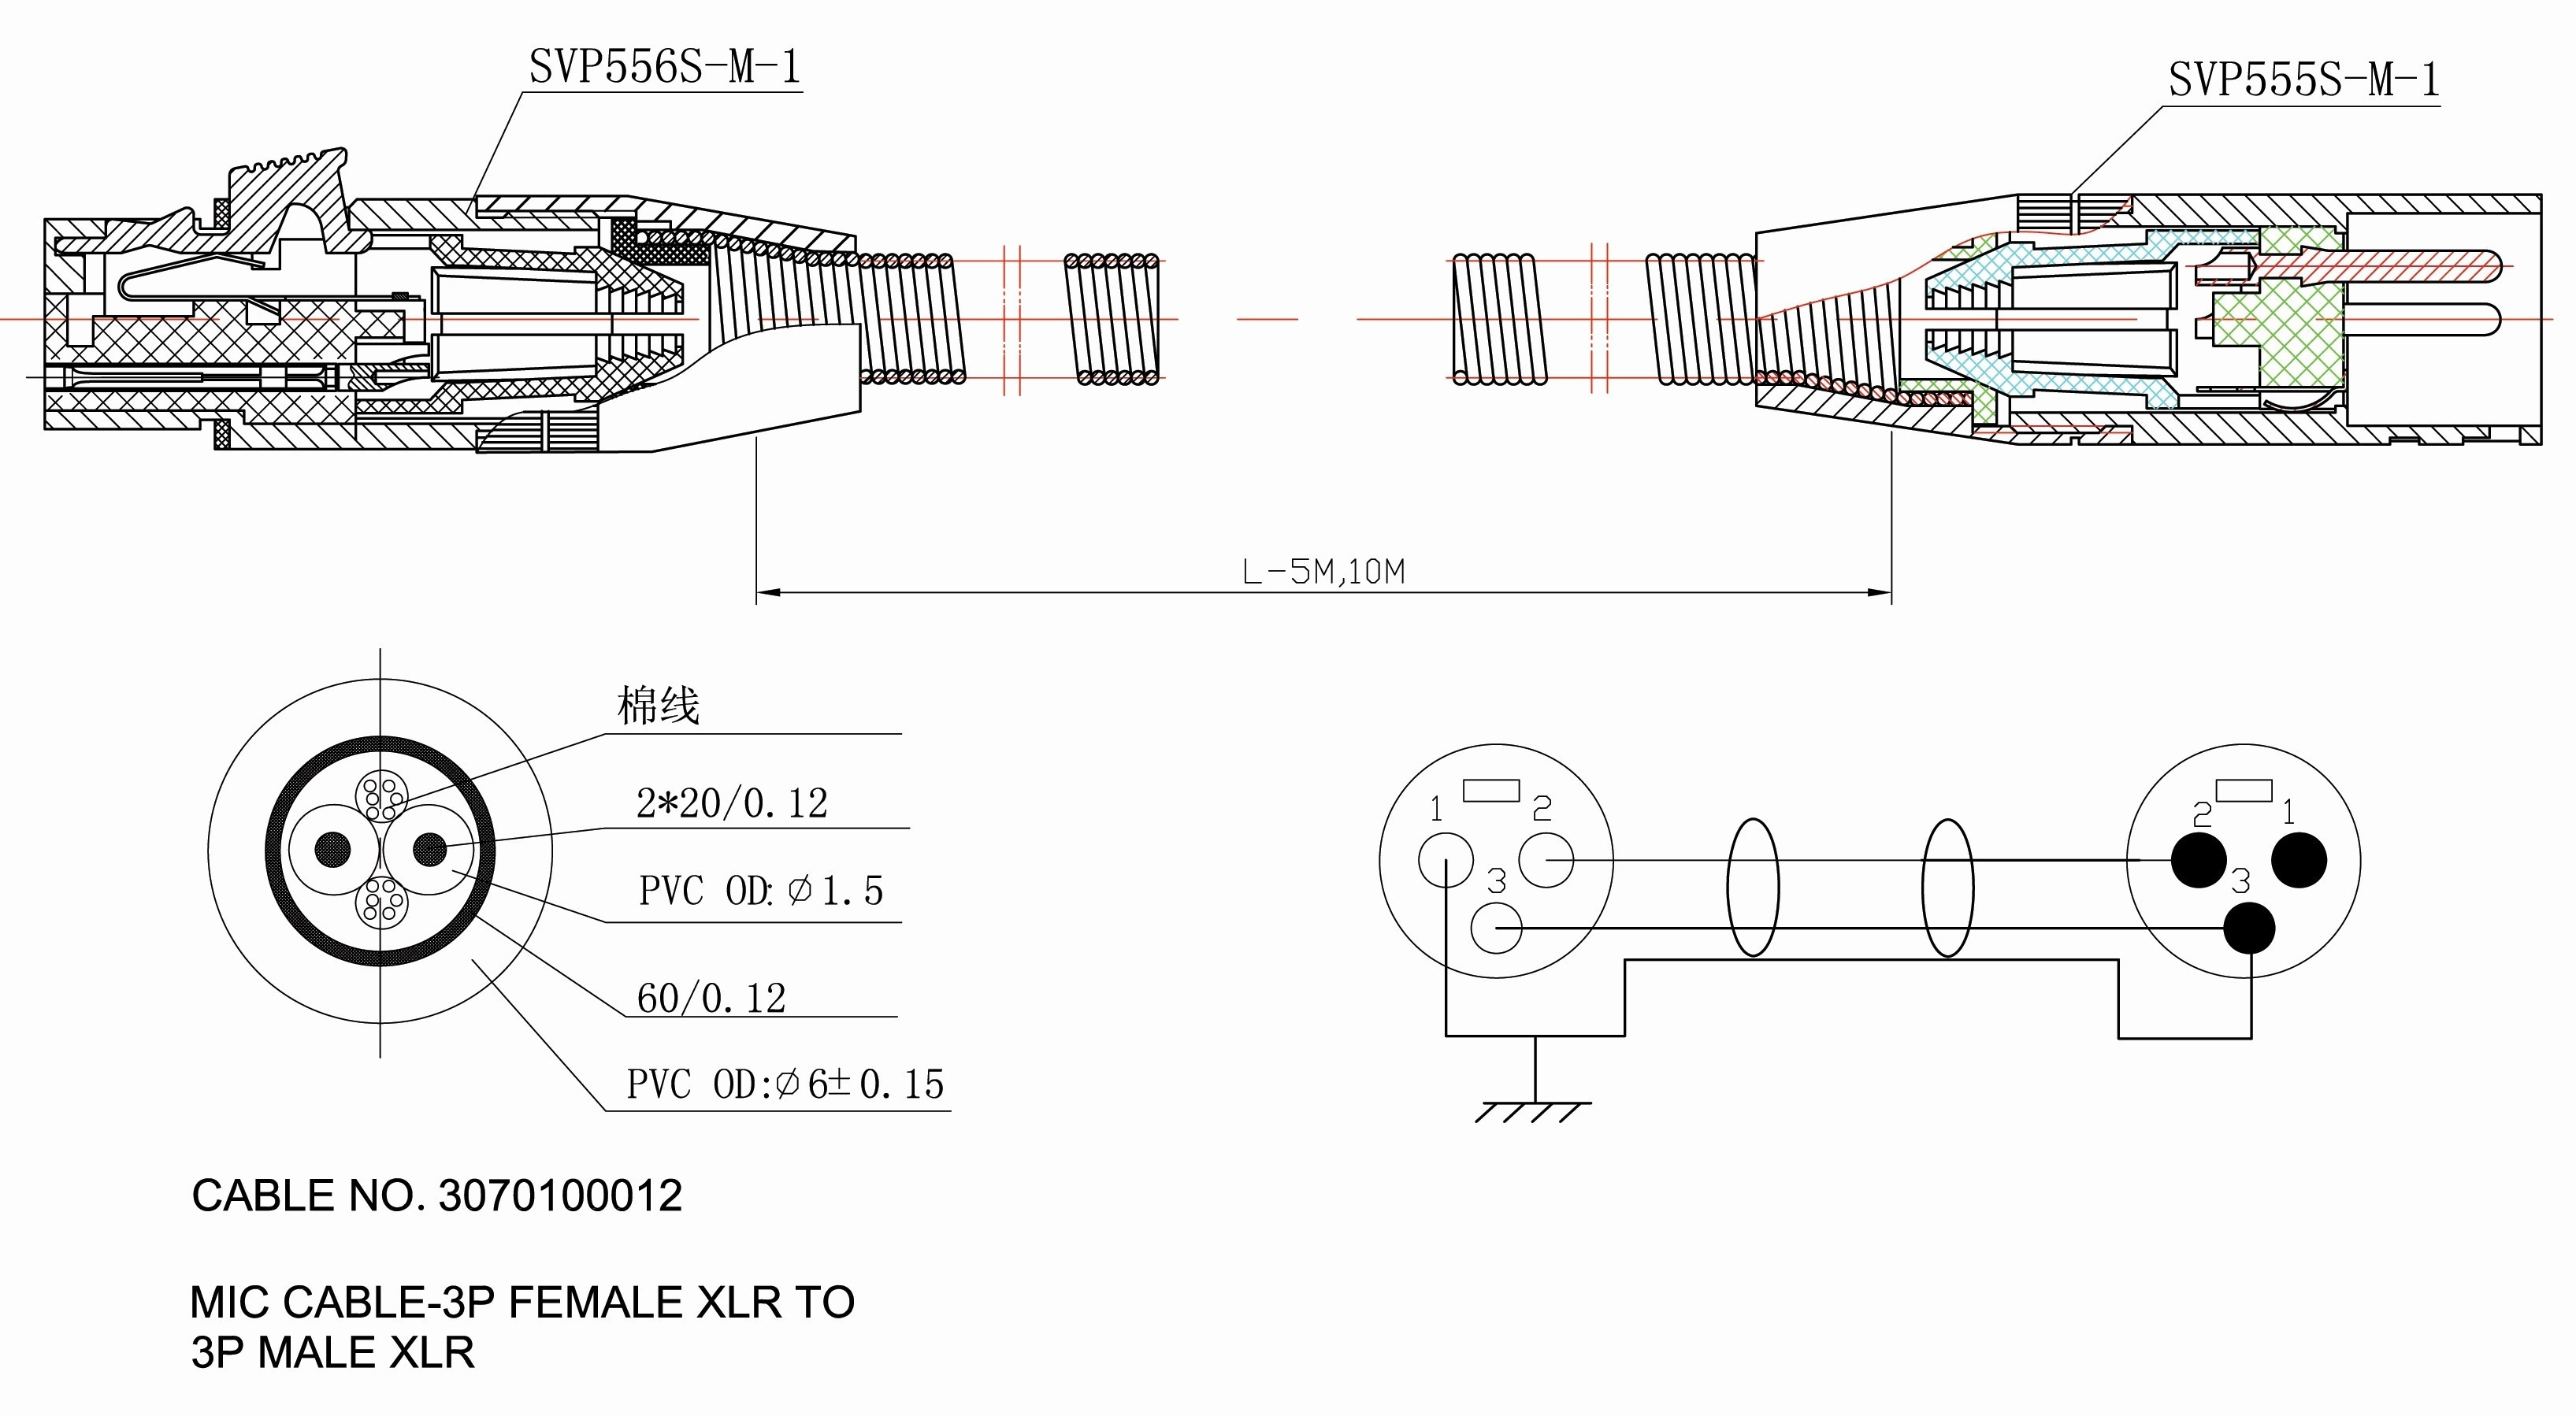 rj45 connector wiring diagram Collection-Rj45 Wiring Diagram Australia New Wiring Diagram for Cat5 Ethernet Cable New Ethernet Cable Wiring 20-h